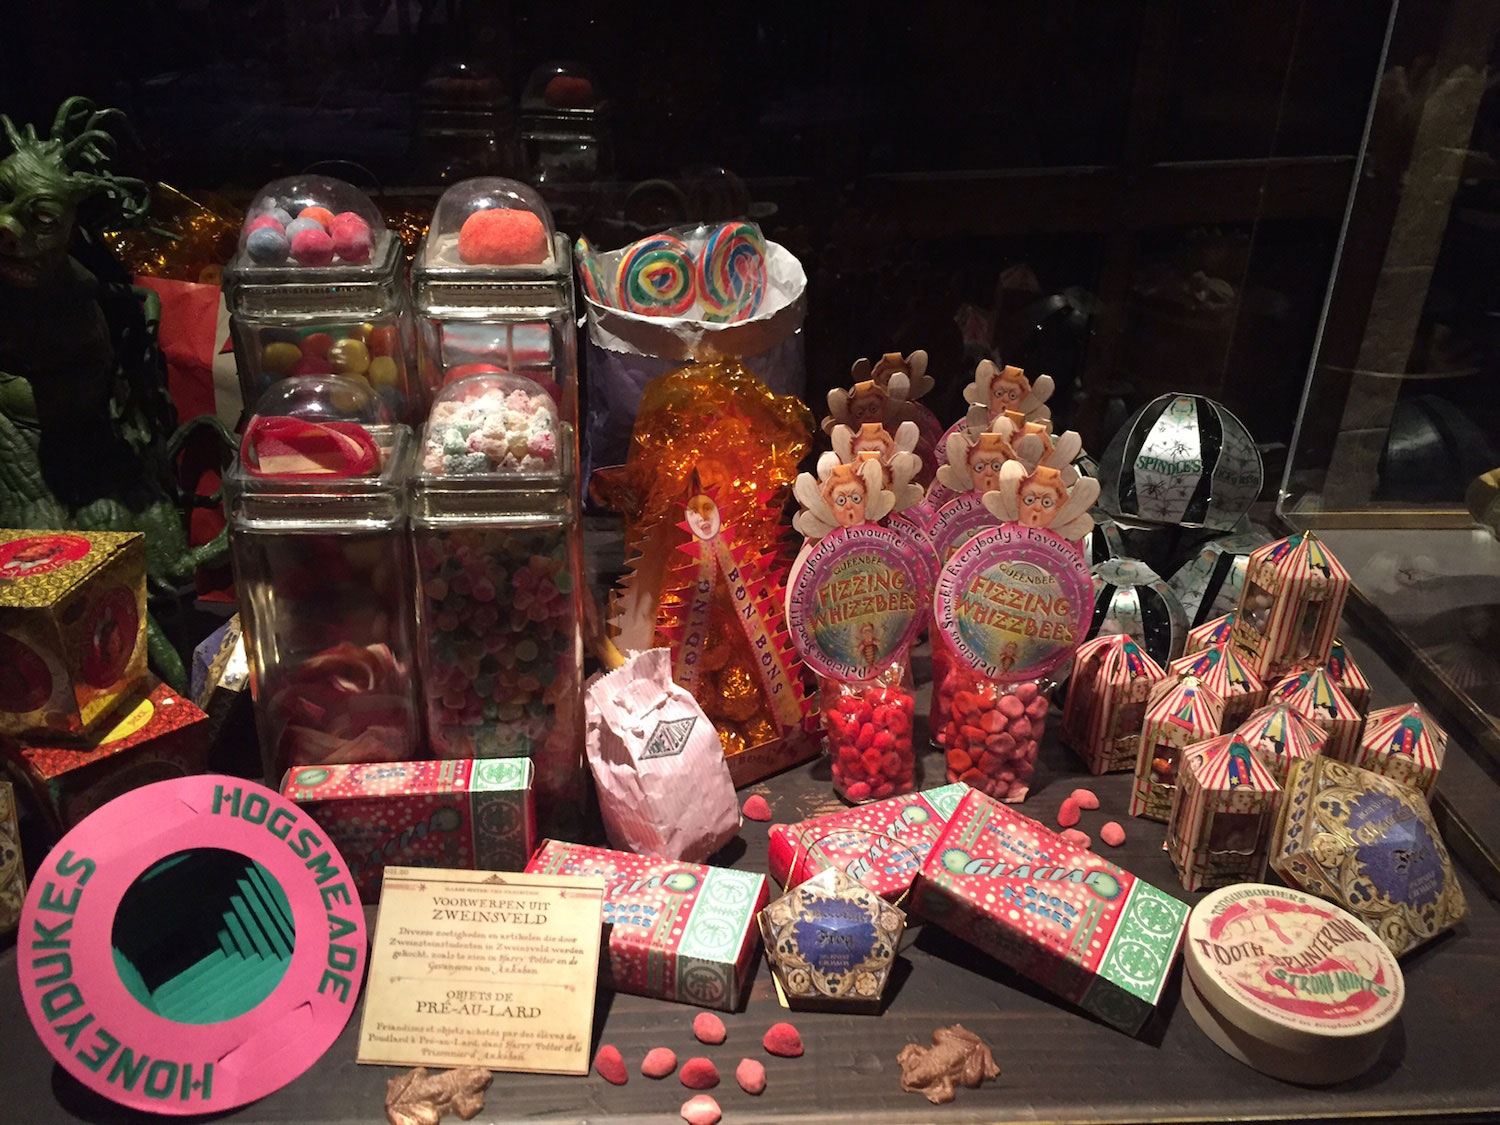 Candy from Hogsmeade